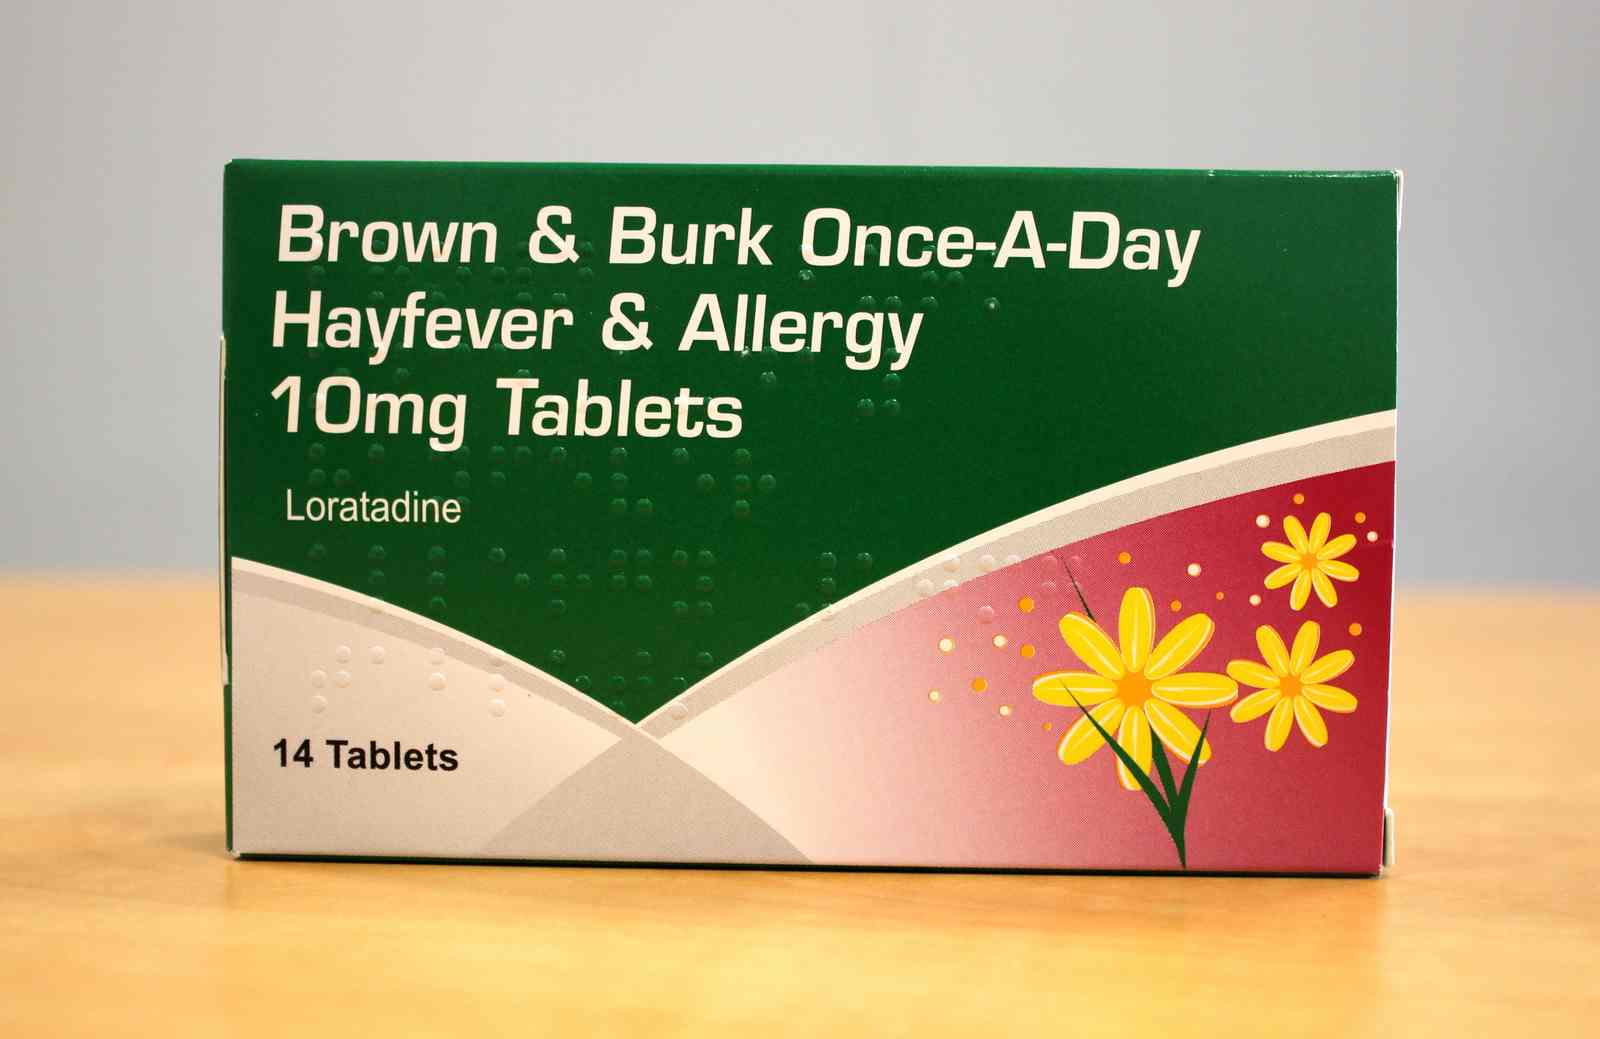 Once -A-Day Hayfever & Allergy 10 mg Tablets